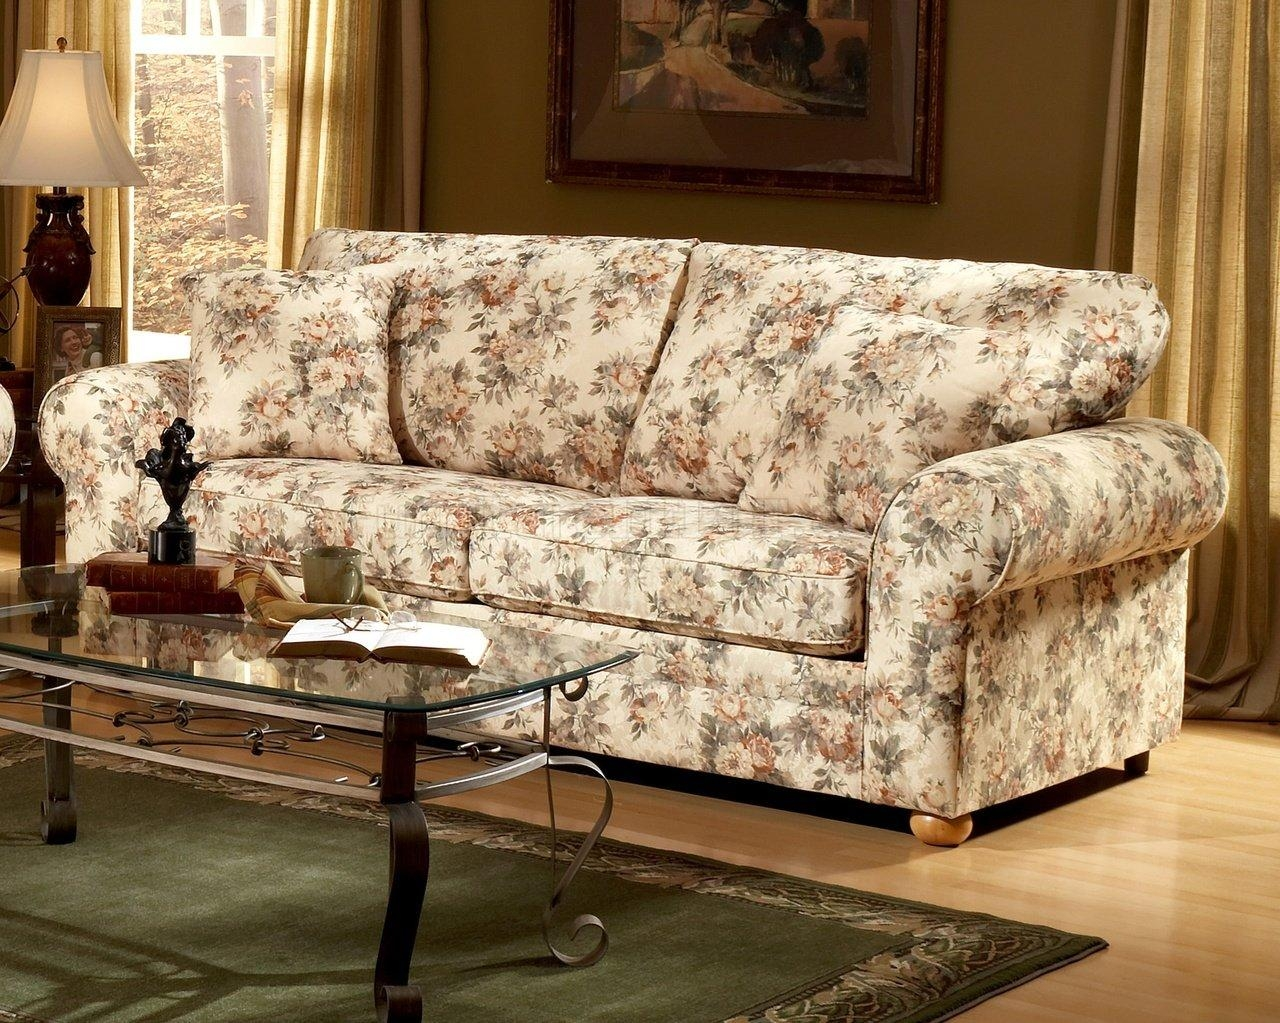 22 collection of chintz floral sofas sofa ideas. Black Bedroom Furniture Sets. Home Design Ideas